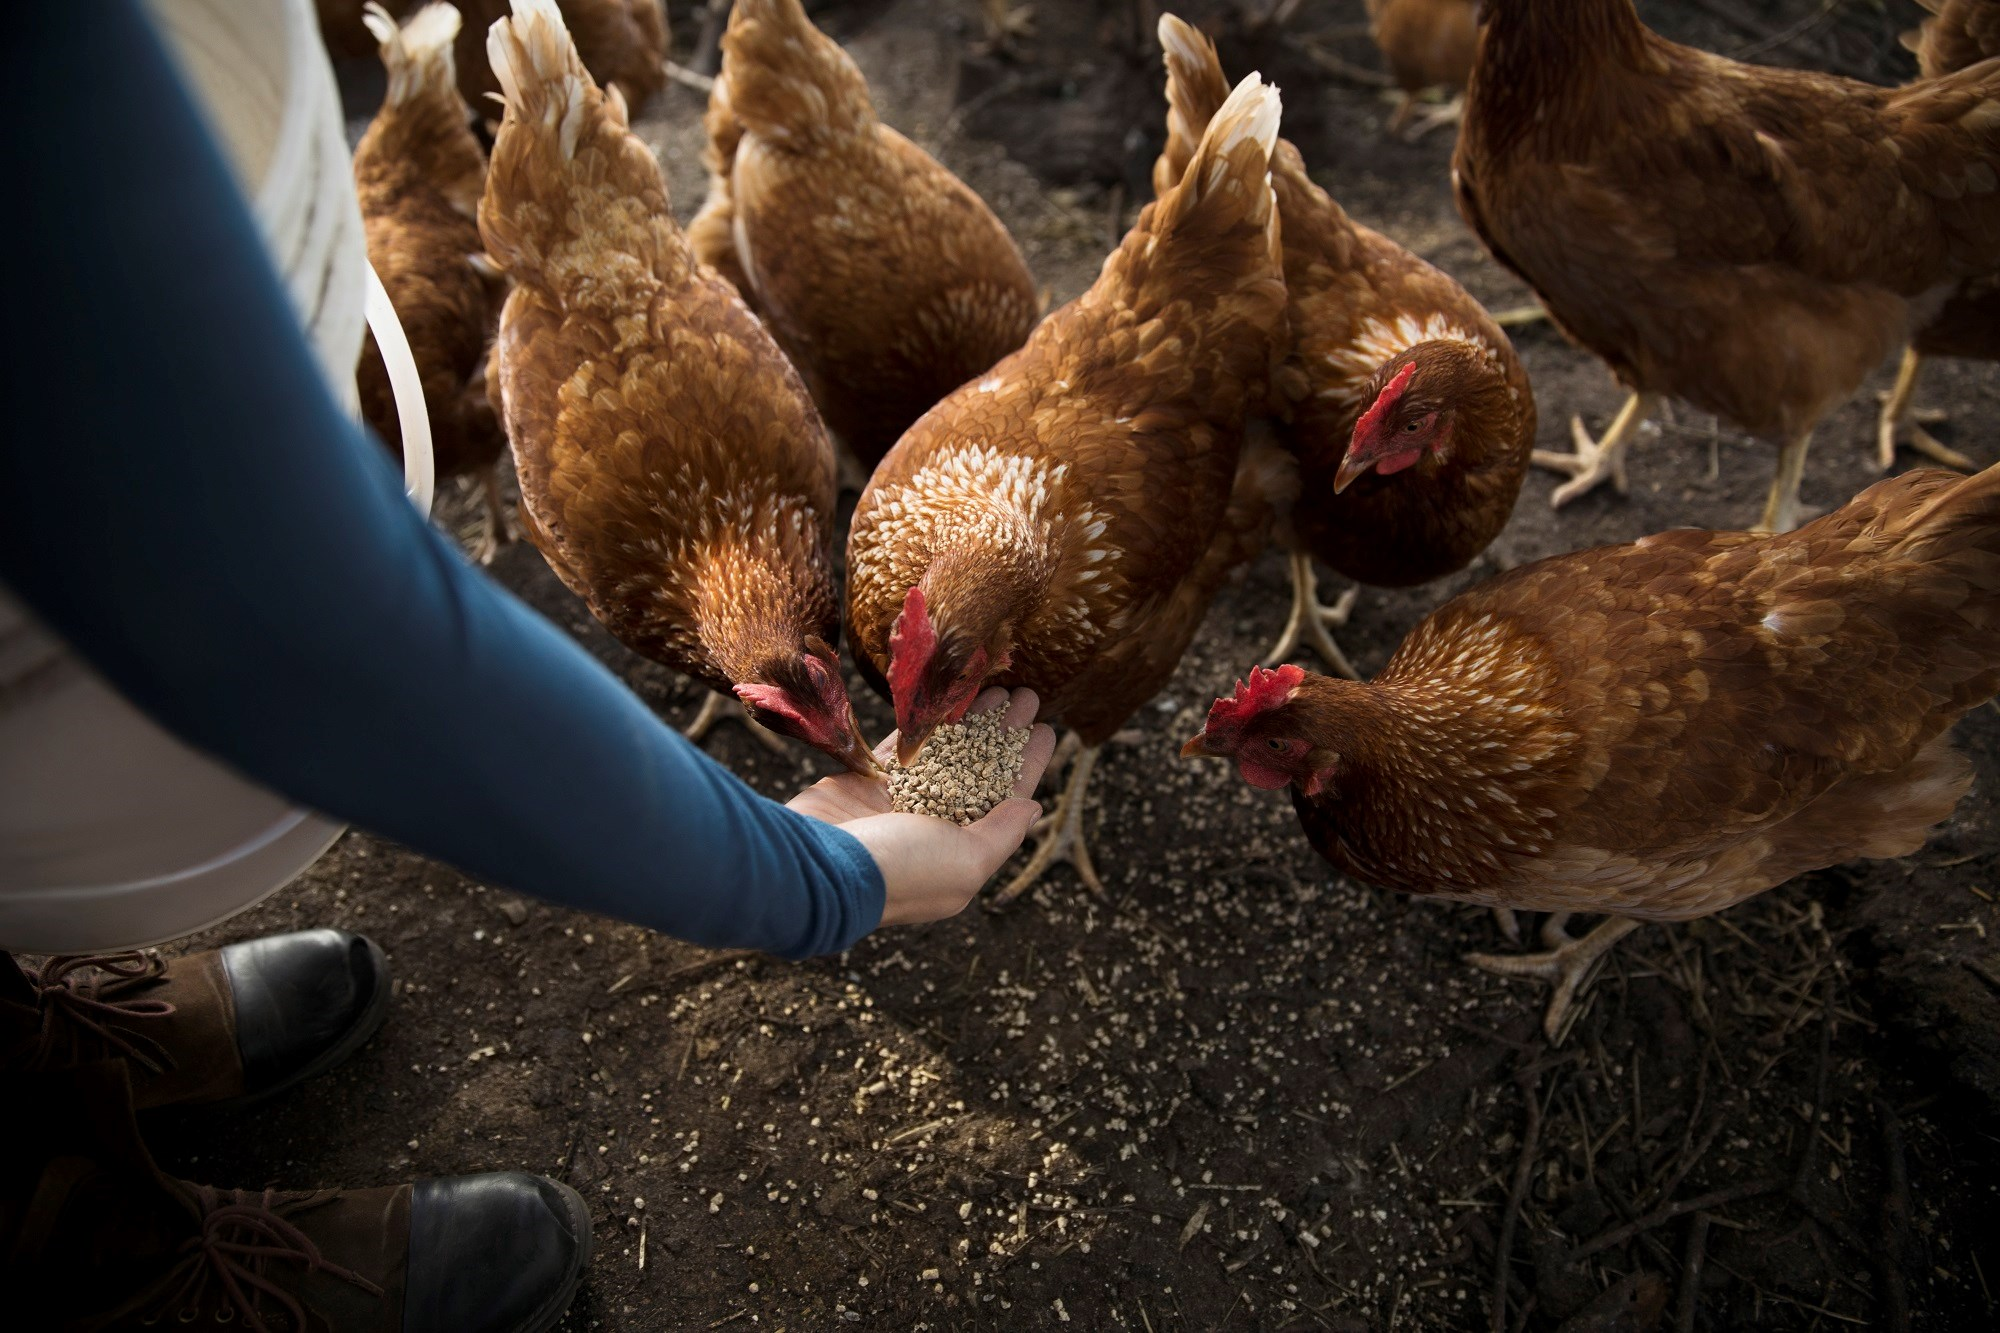 Final CDC Update on Salmonella Linked to Backyard Poultry